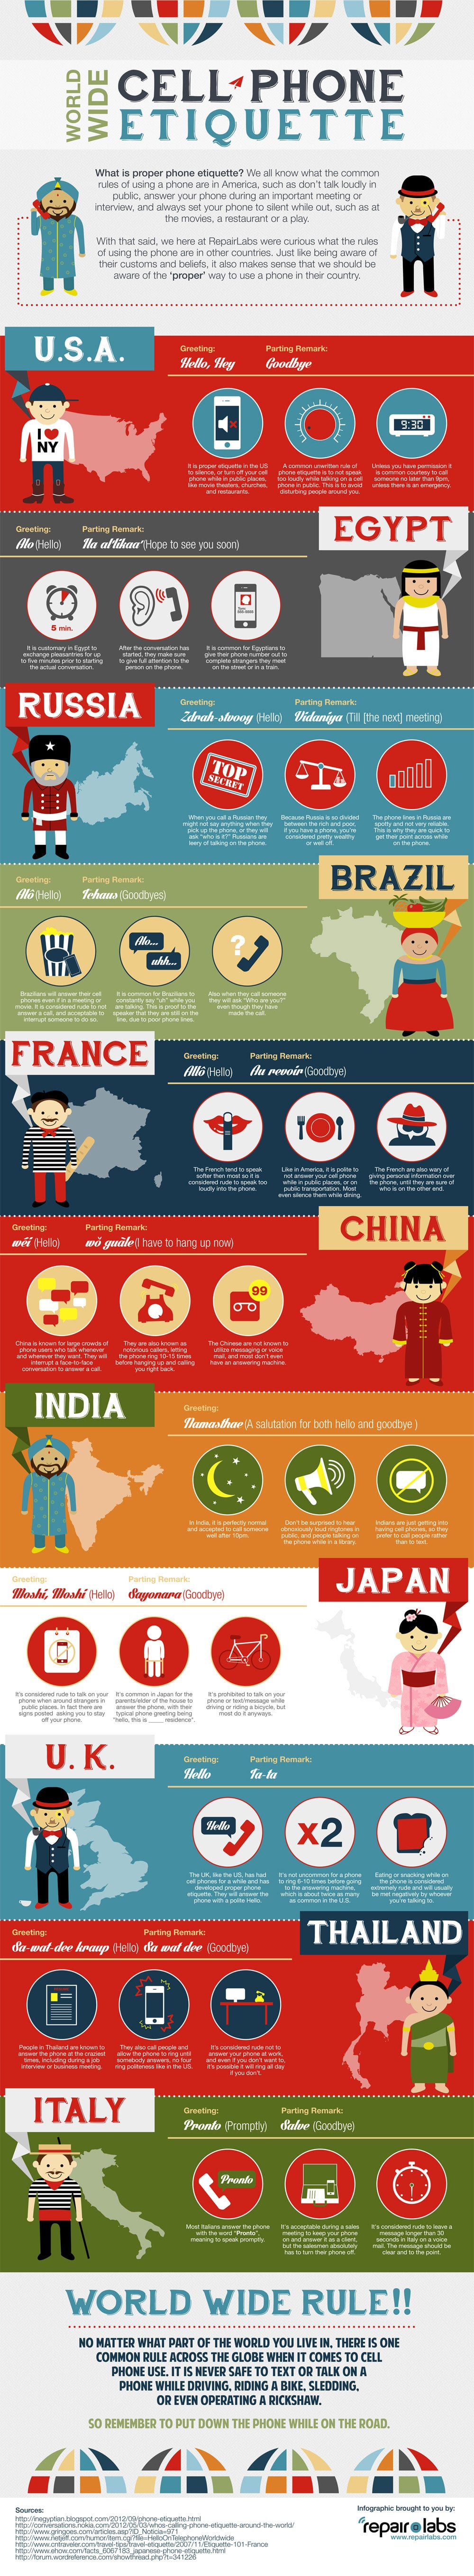 How Cell Phone Etiquette Is Different Around The World [Infographic]